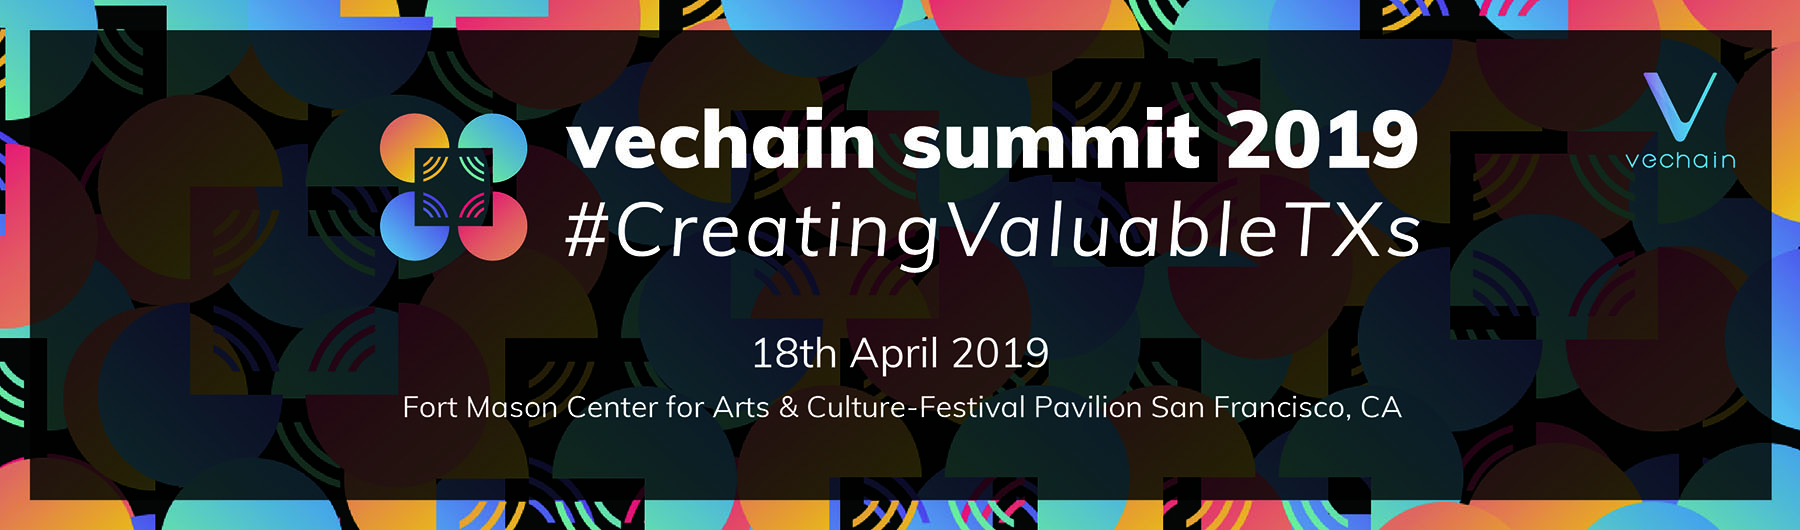 VeChain Summit 2019